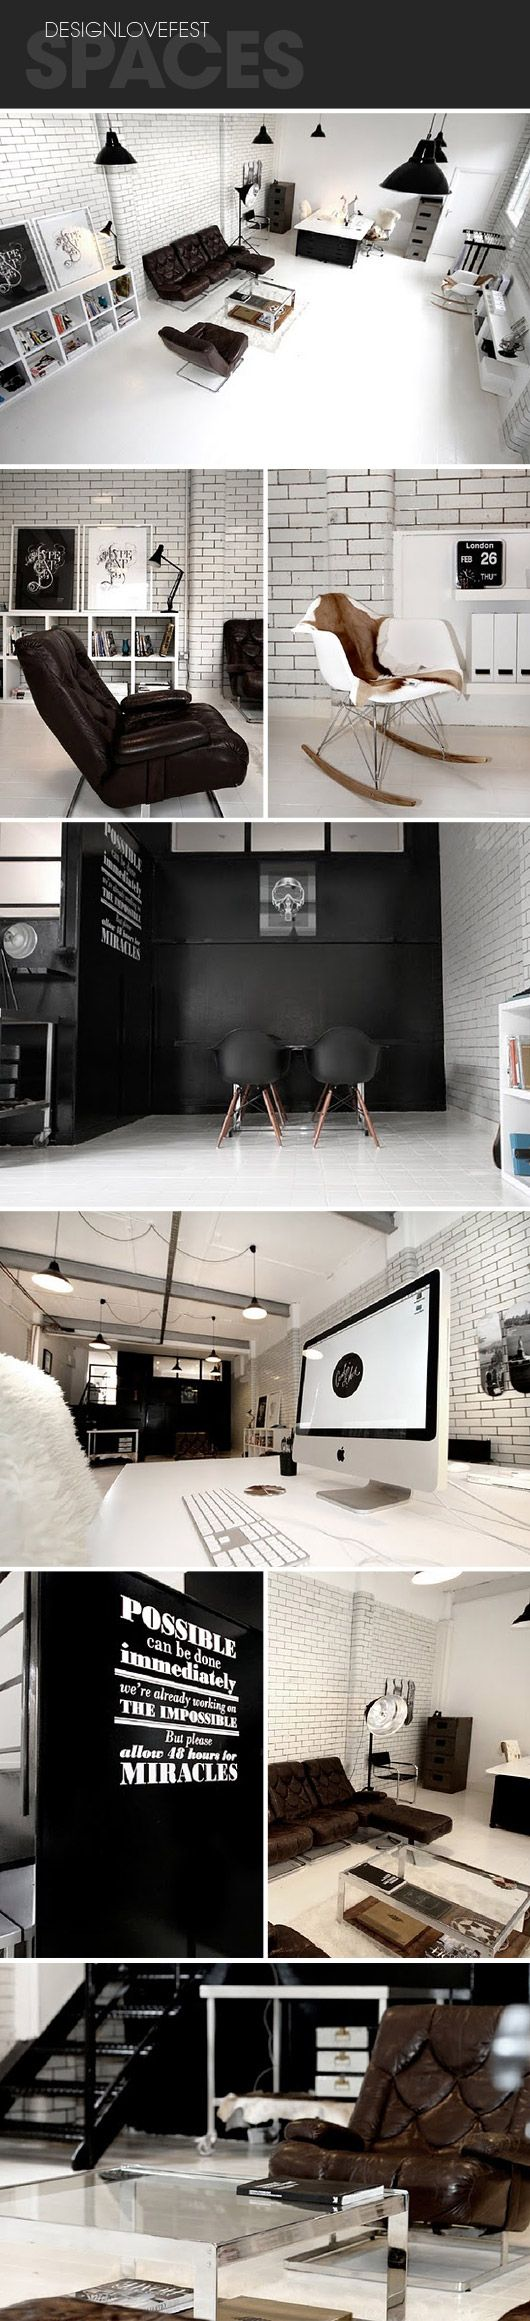 white floor: Studios Spaces, Offices Inspiration, Black And White, Offices Spaces, Subway Tile, Black White, Black Chairs, White Floors, Black Wall